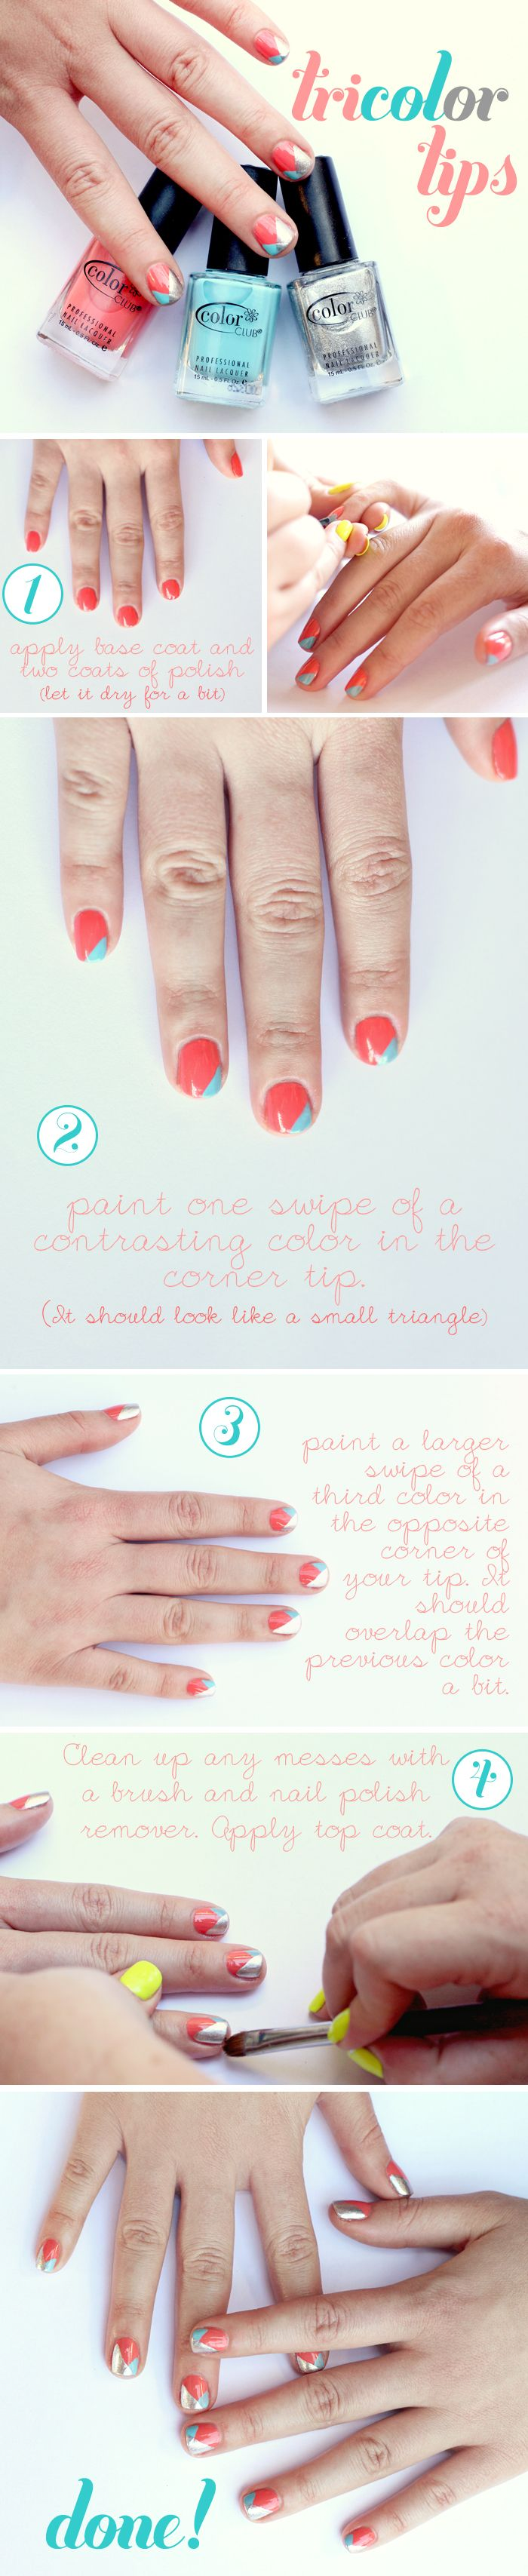 Tricolor Tips